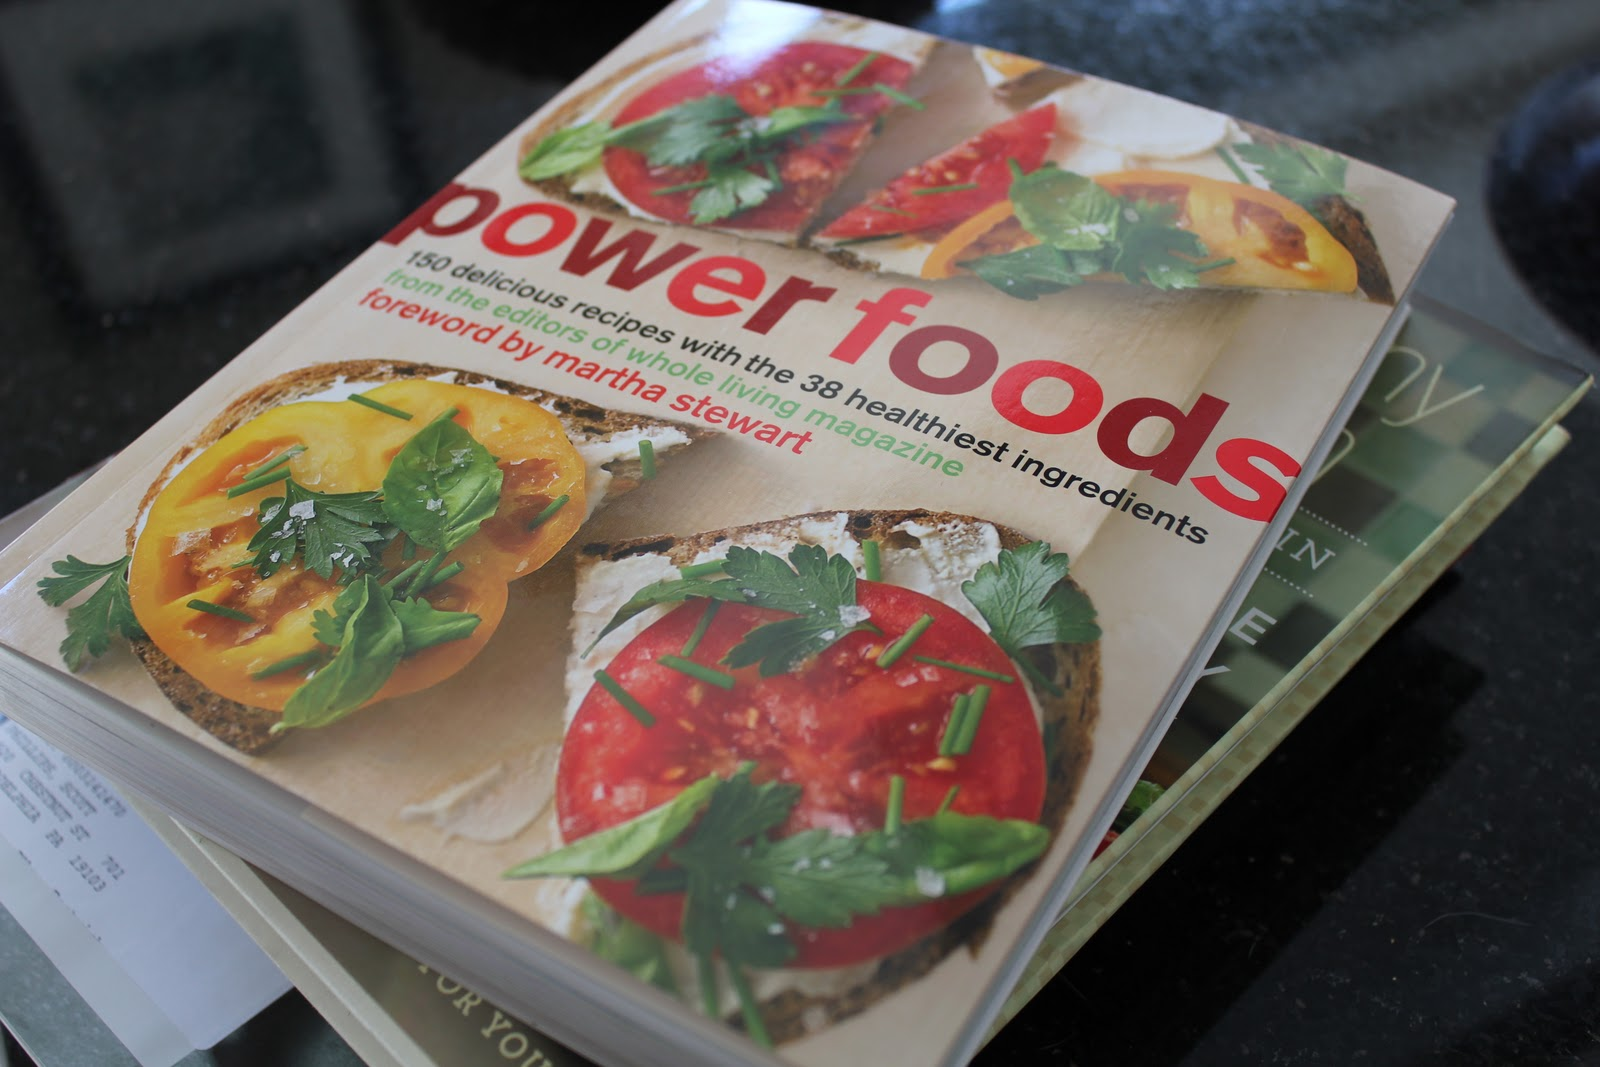 Amazon.com: Power Foods: 150 Delicious Recipes with the 38